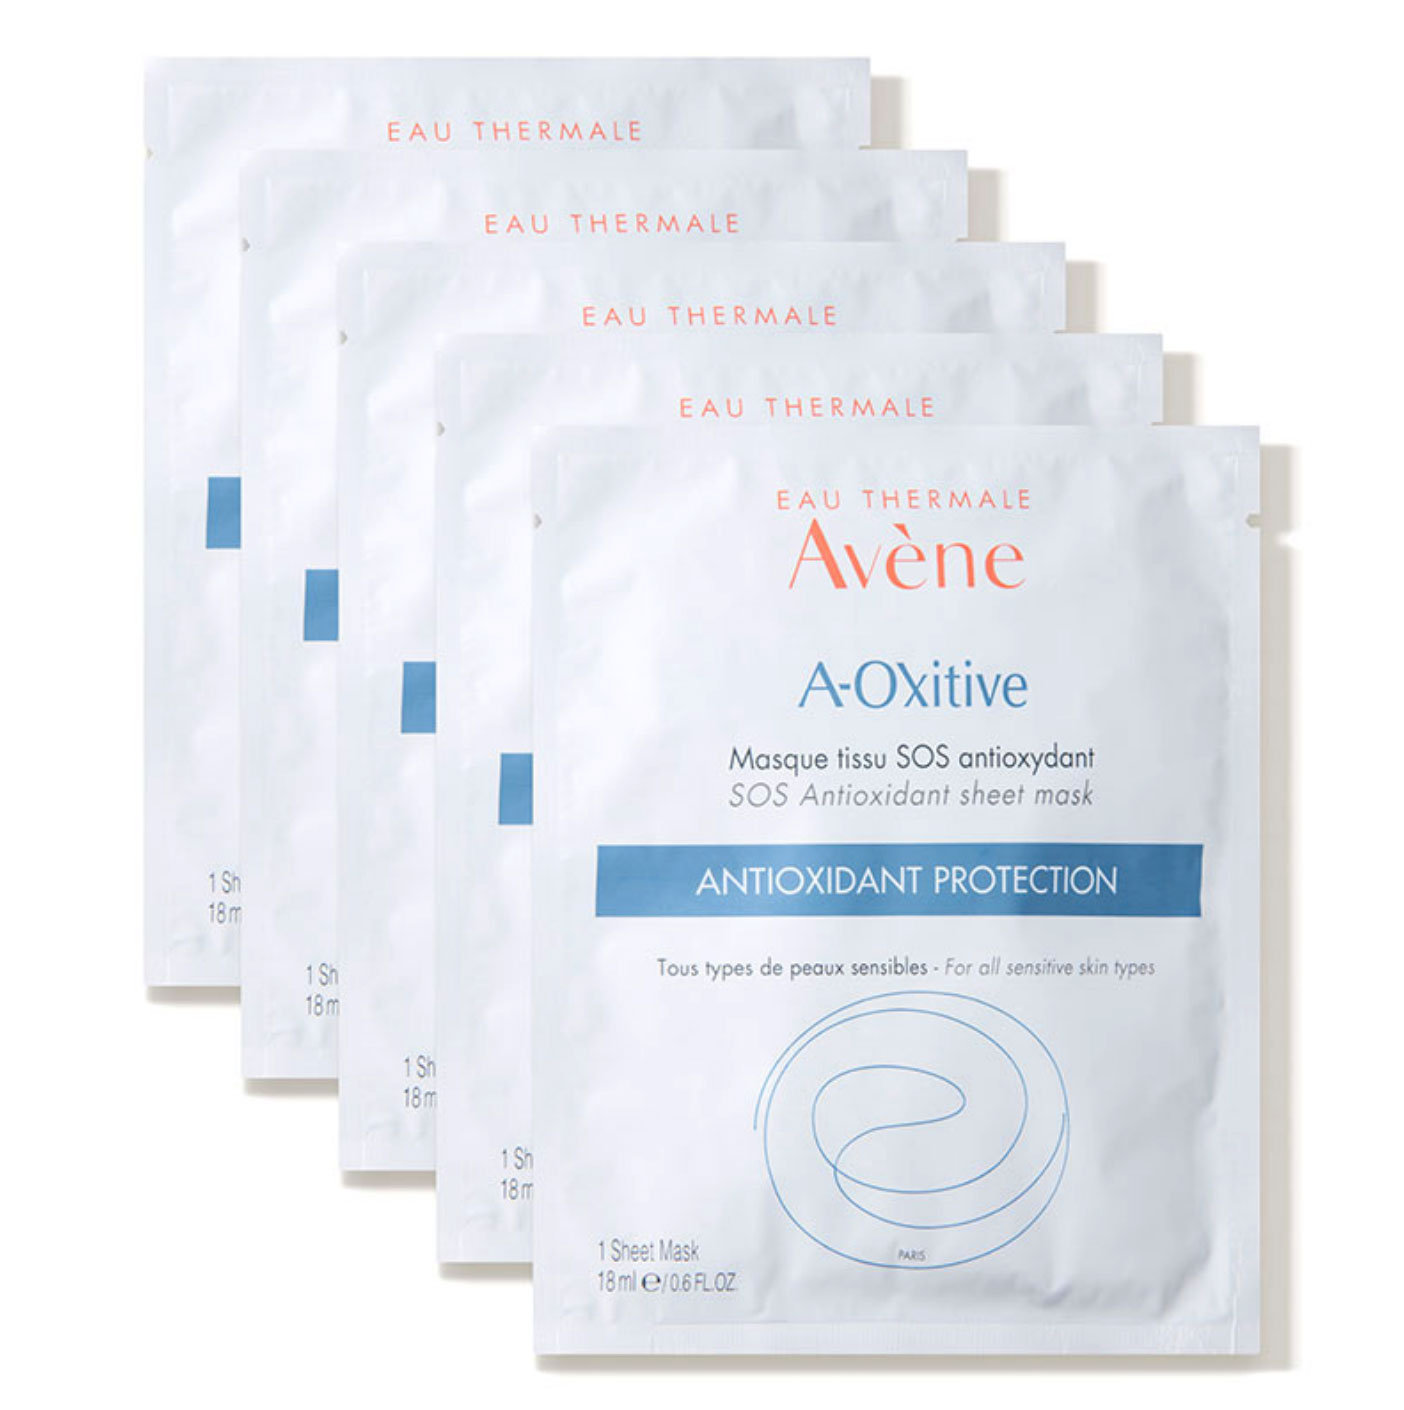 Avène A-OXitive SOS Antioxidant Protection Sheet Mask Best New Products - Try this soothing vitamin C and E-infused sheet mask post-procedure or when your skin is feeling dull and tired for an immediate radiance boost. $50 for 5 masks, dermstore.com